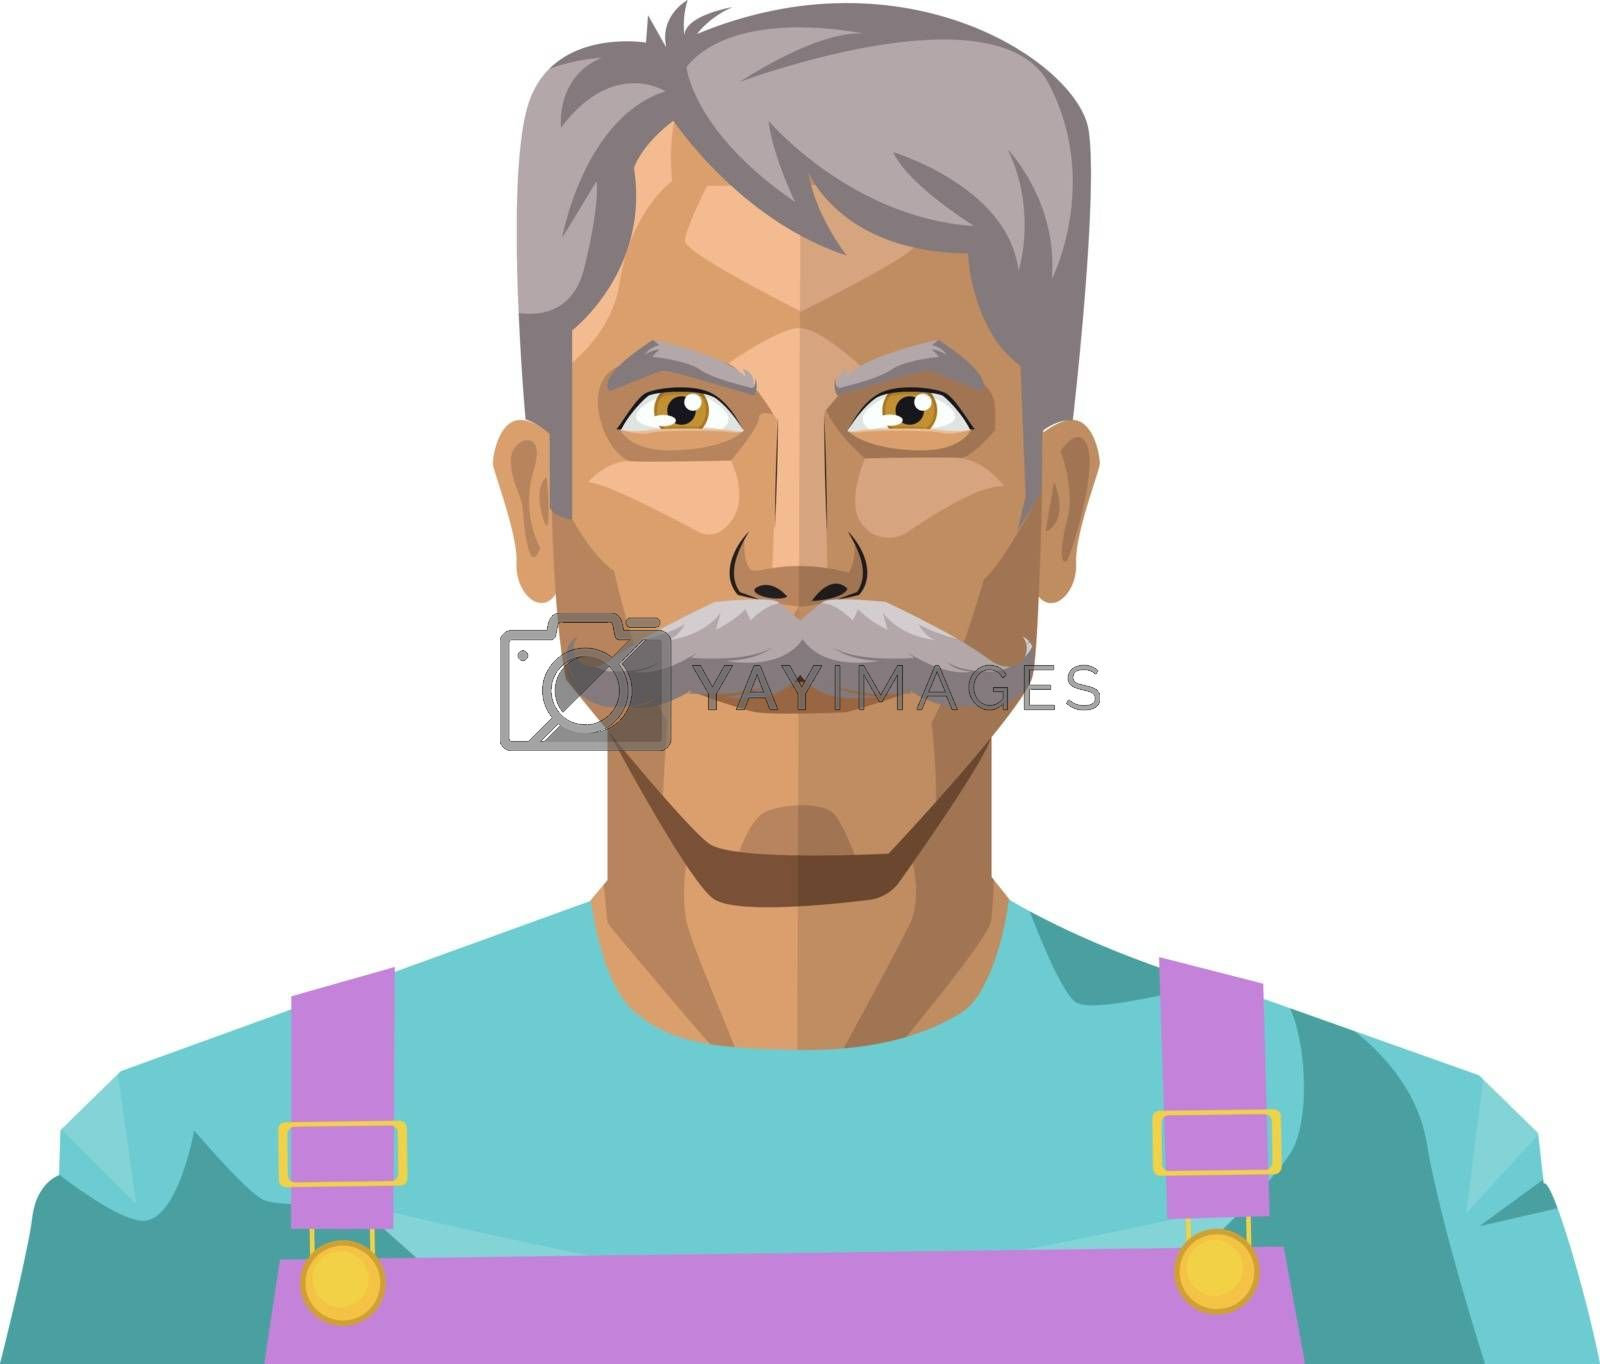 Royalty free image of Older man with moustaches illustration vector on white backgroun by Morphart